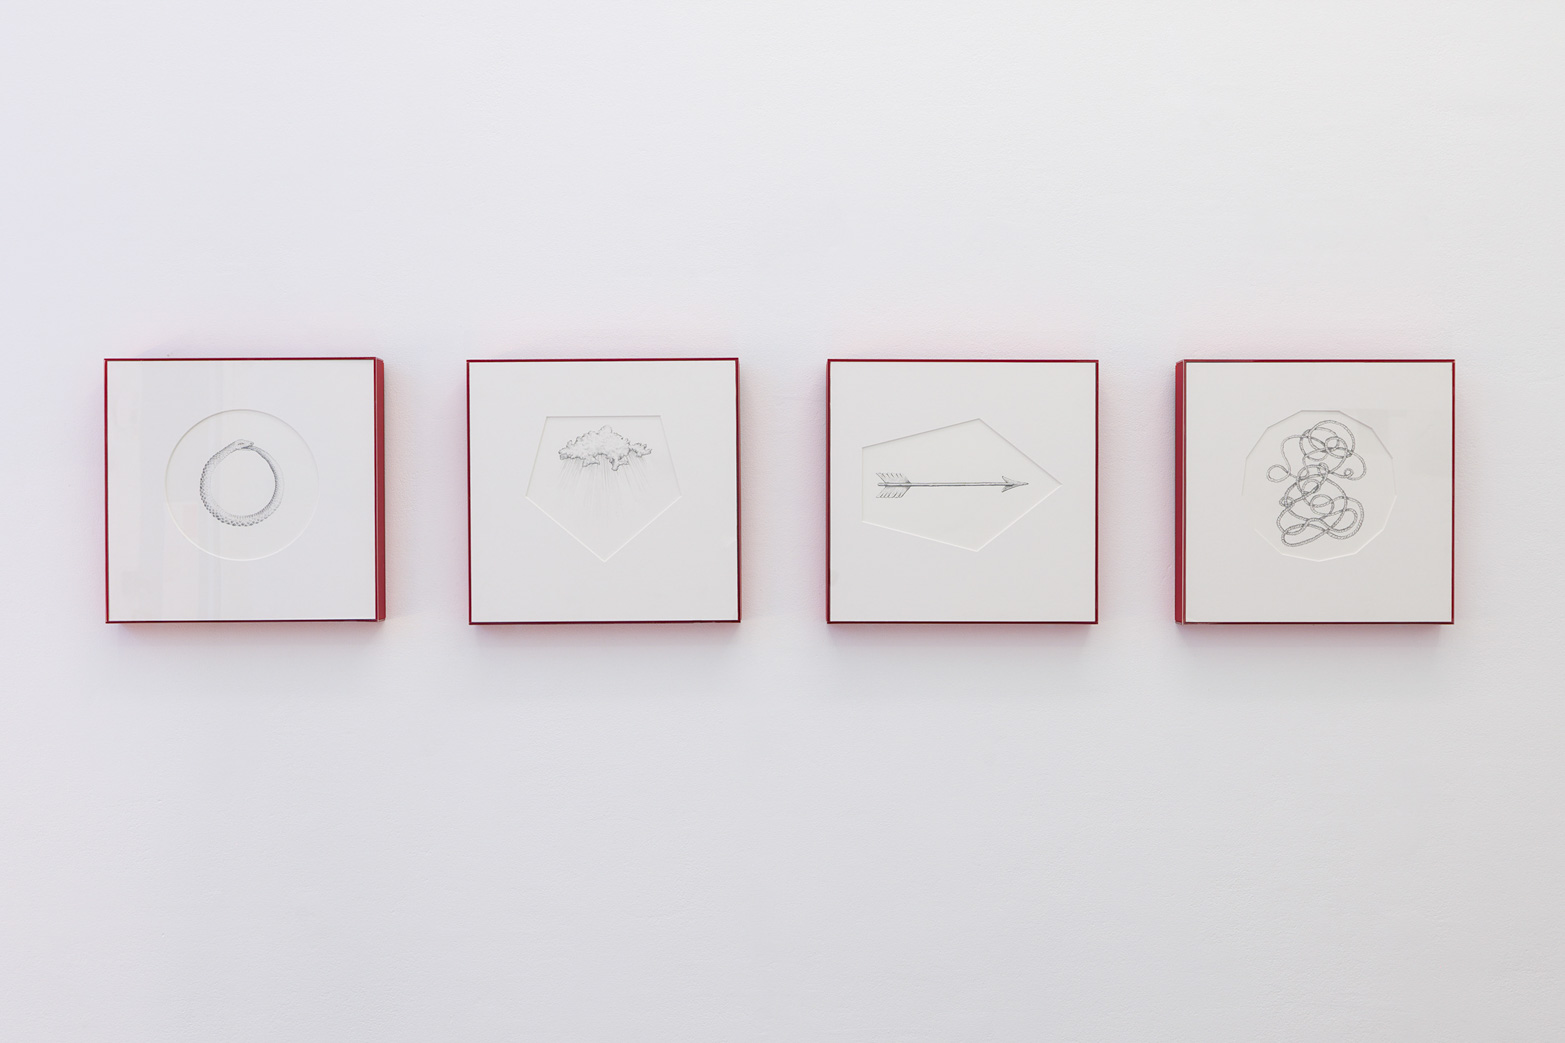 Cathy Haynes, Geometries of Time, 2012. Tenderpixel.